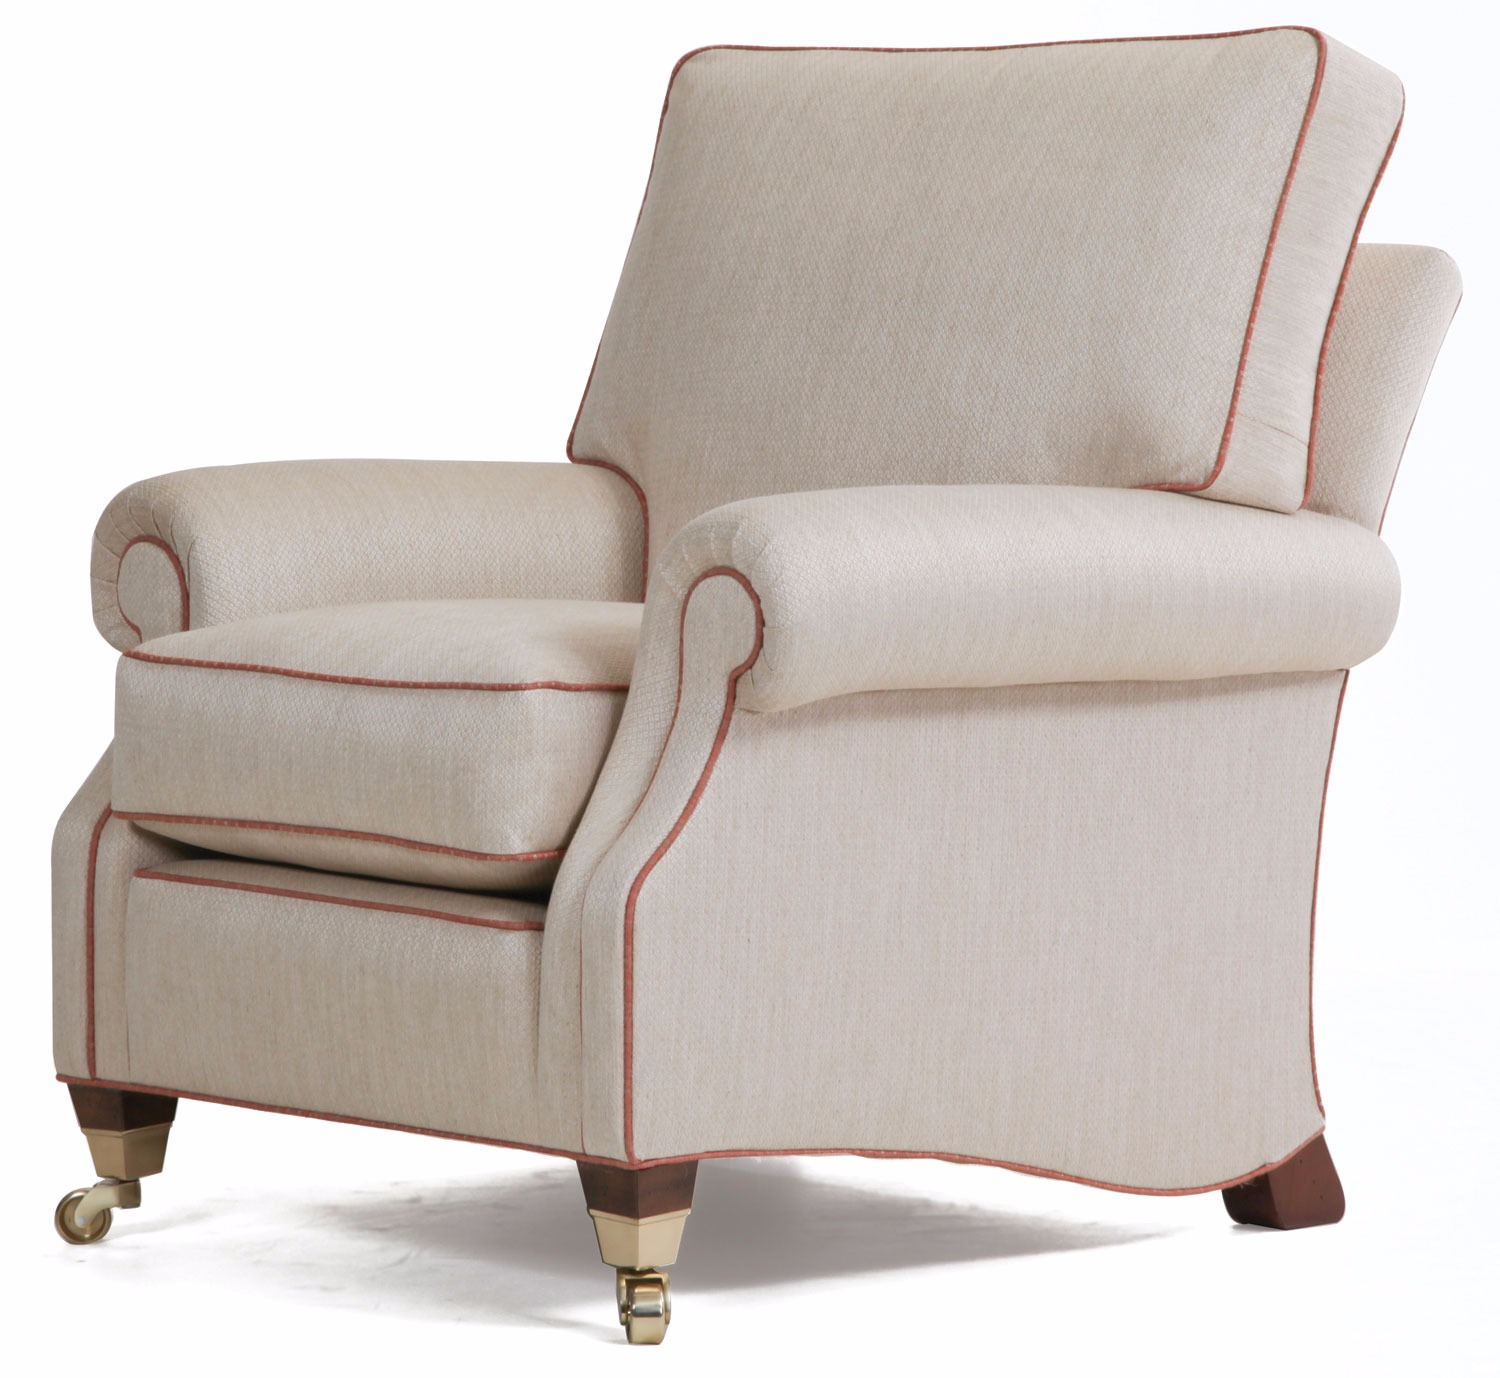 Monet chair in chenille with contrast piping